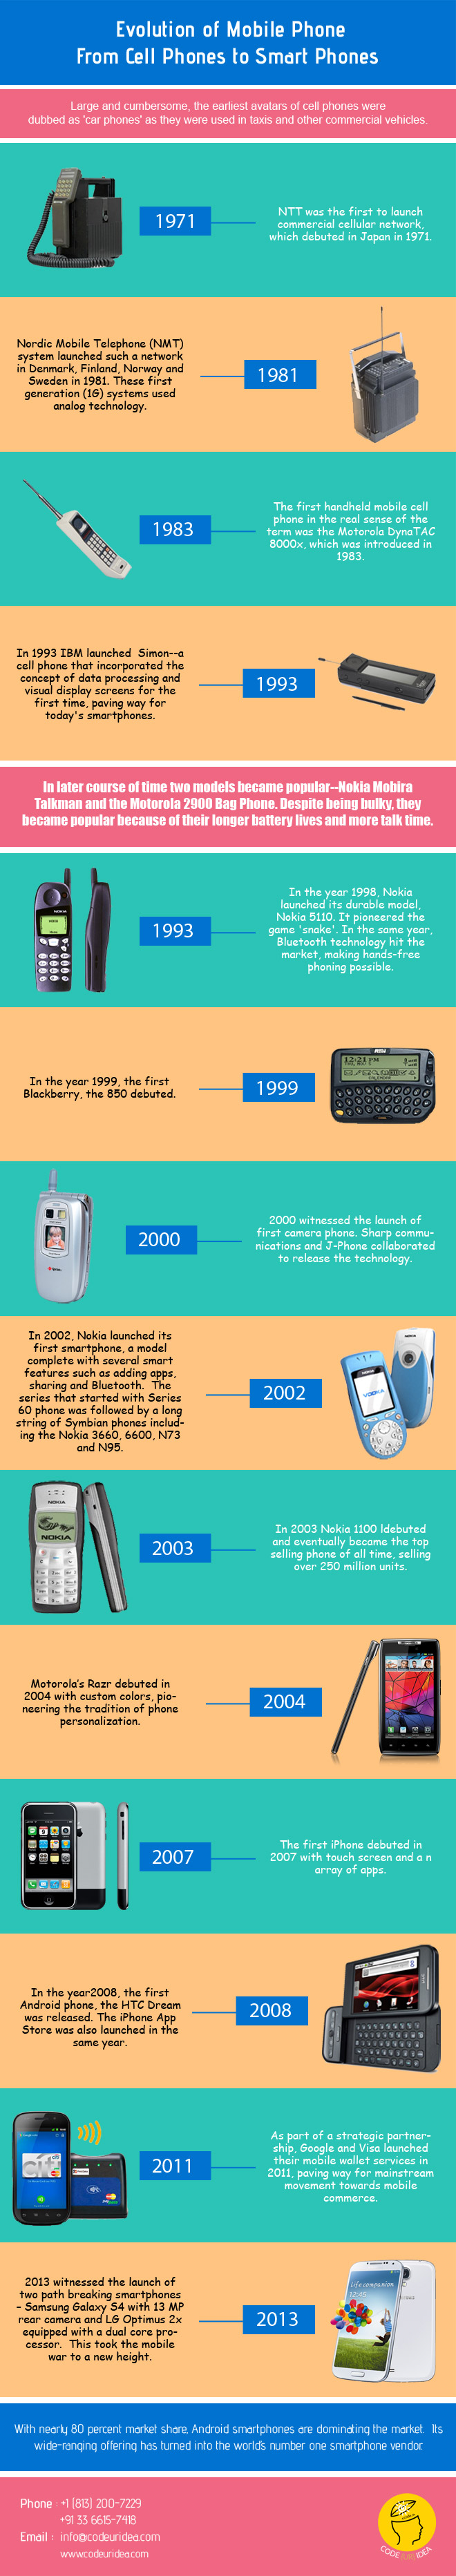 evolution of cellphone to smartphone